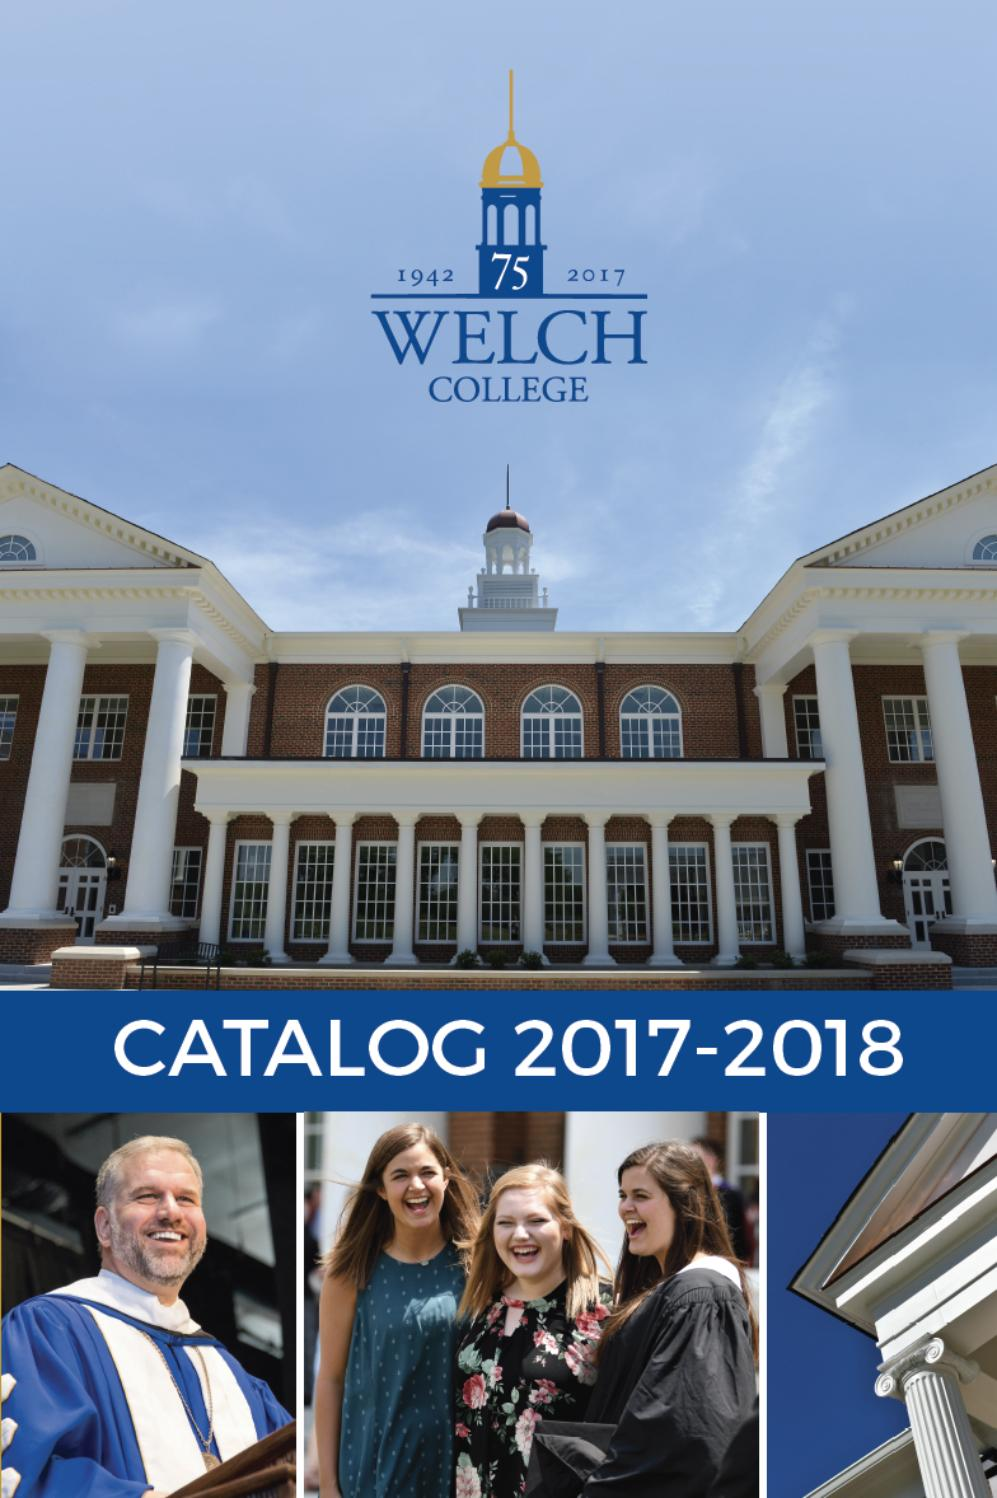 Welch college catalog 2017 2018 by welch college issuu fandeluxe Images